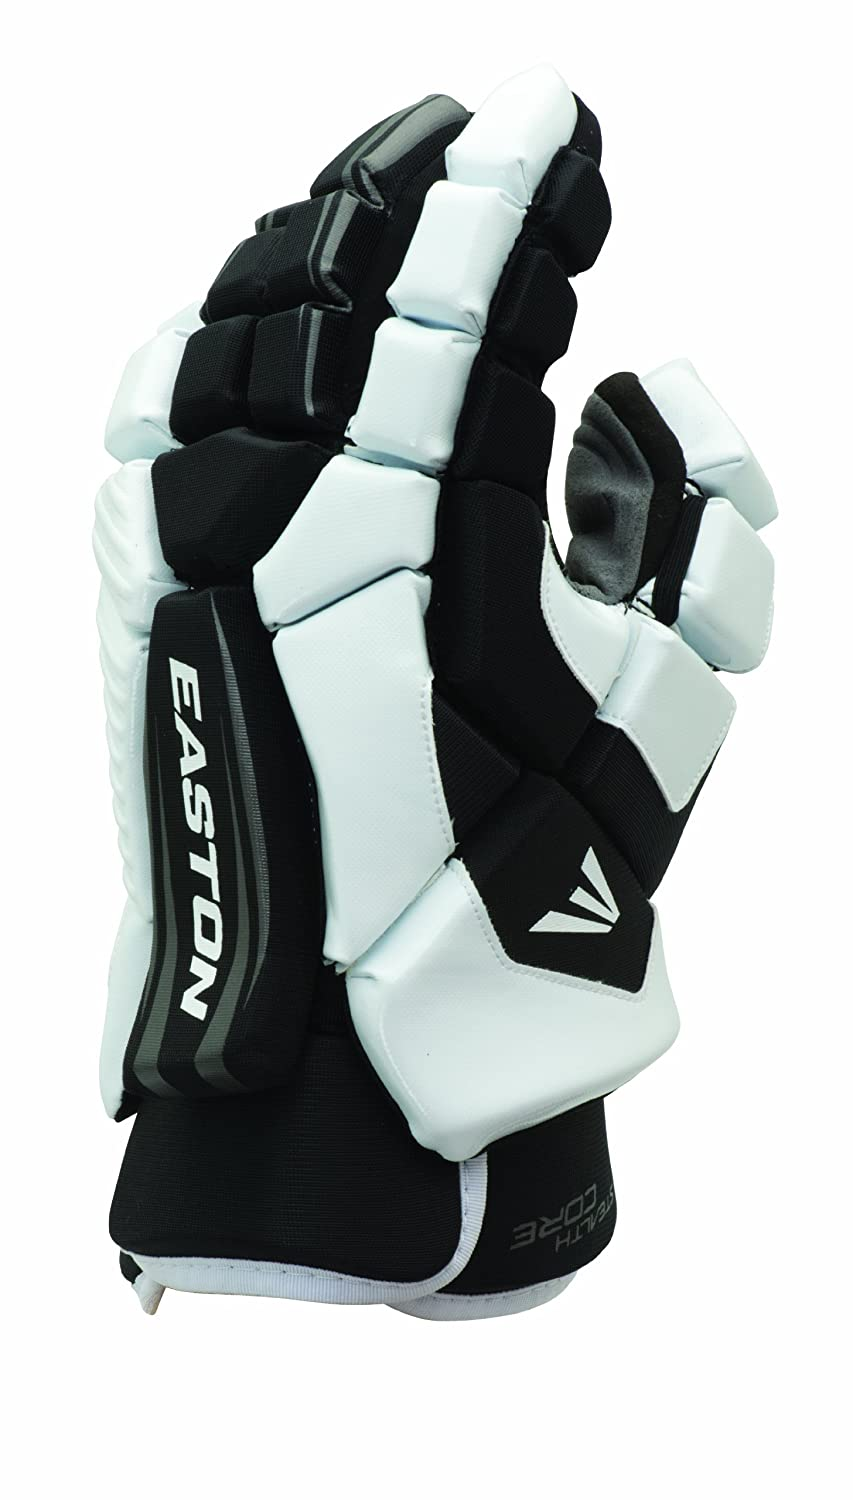 Easton Stealth Core 12-Inch Lacrosse Gloves